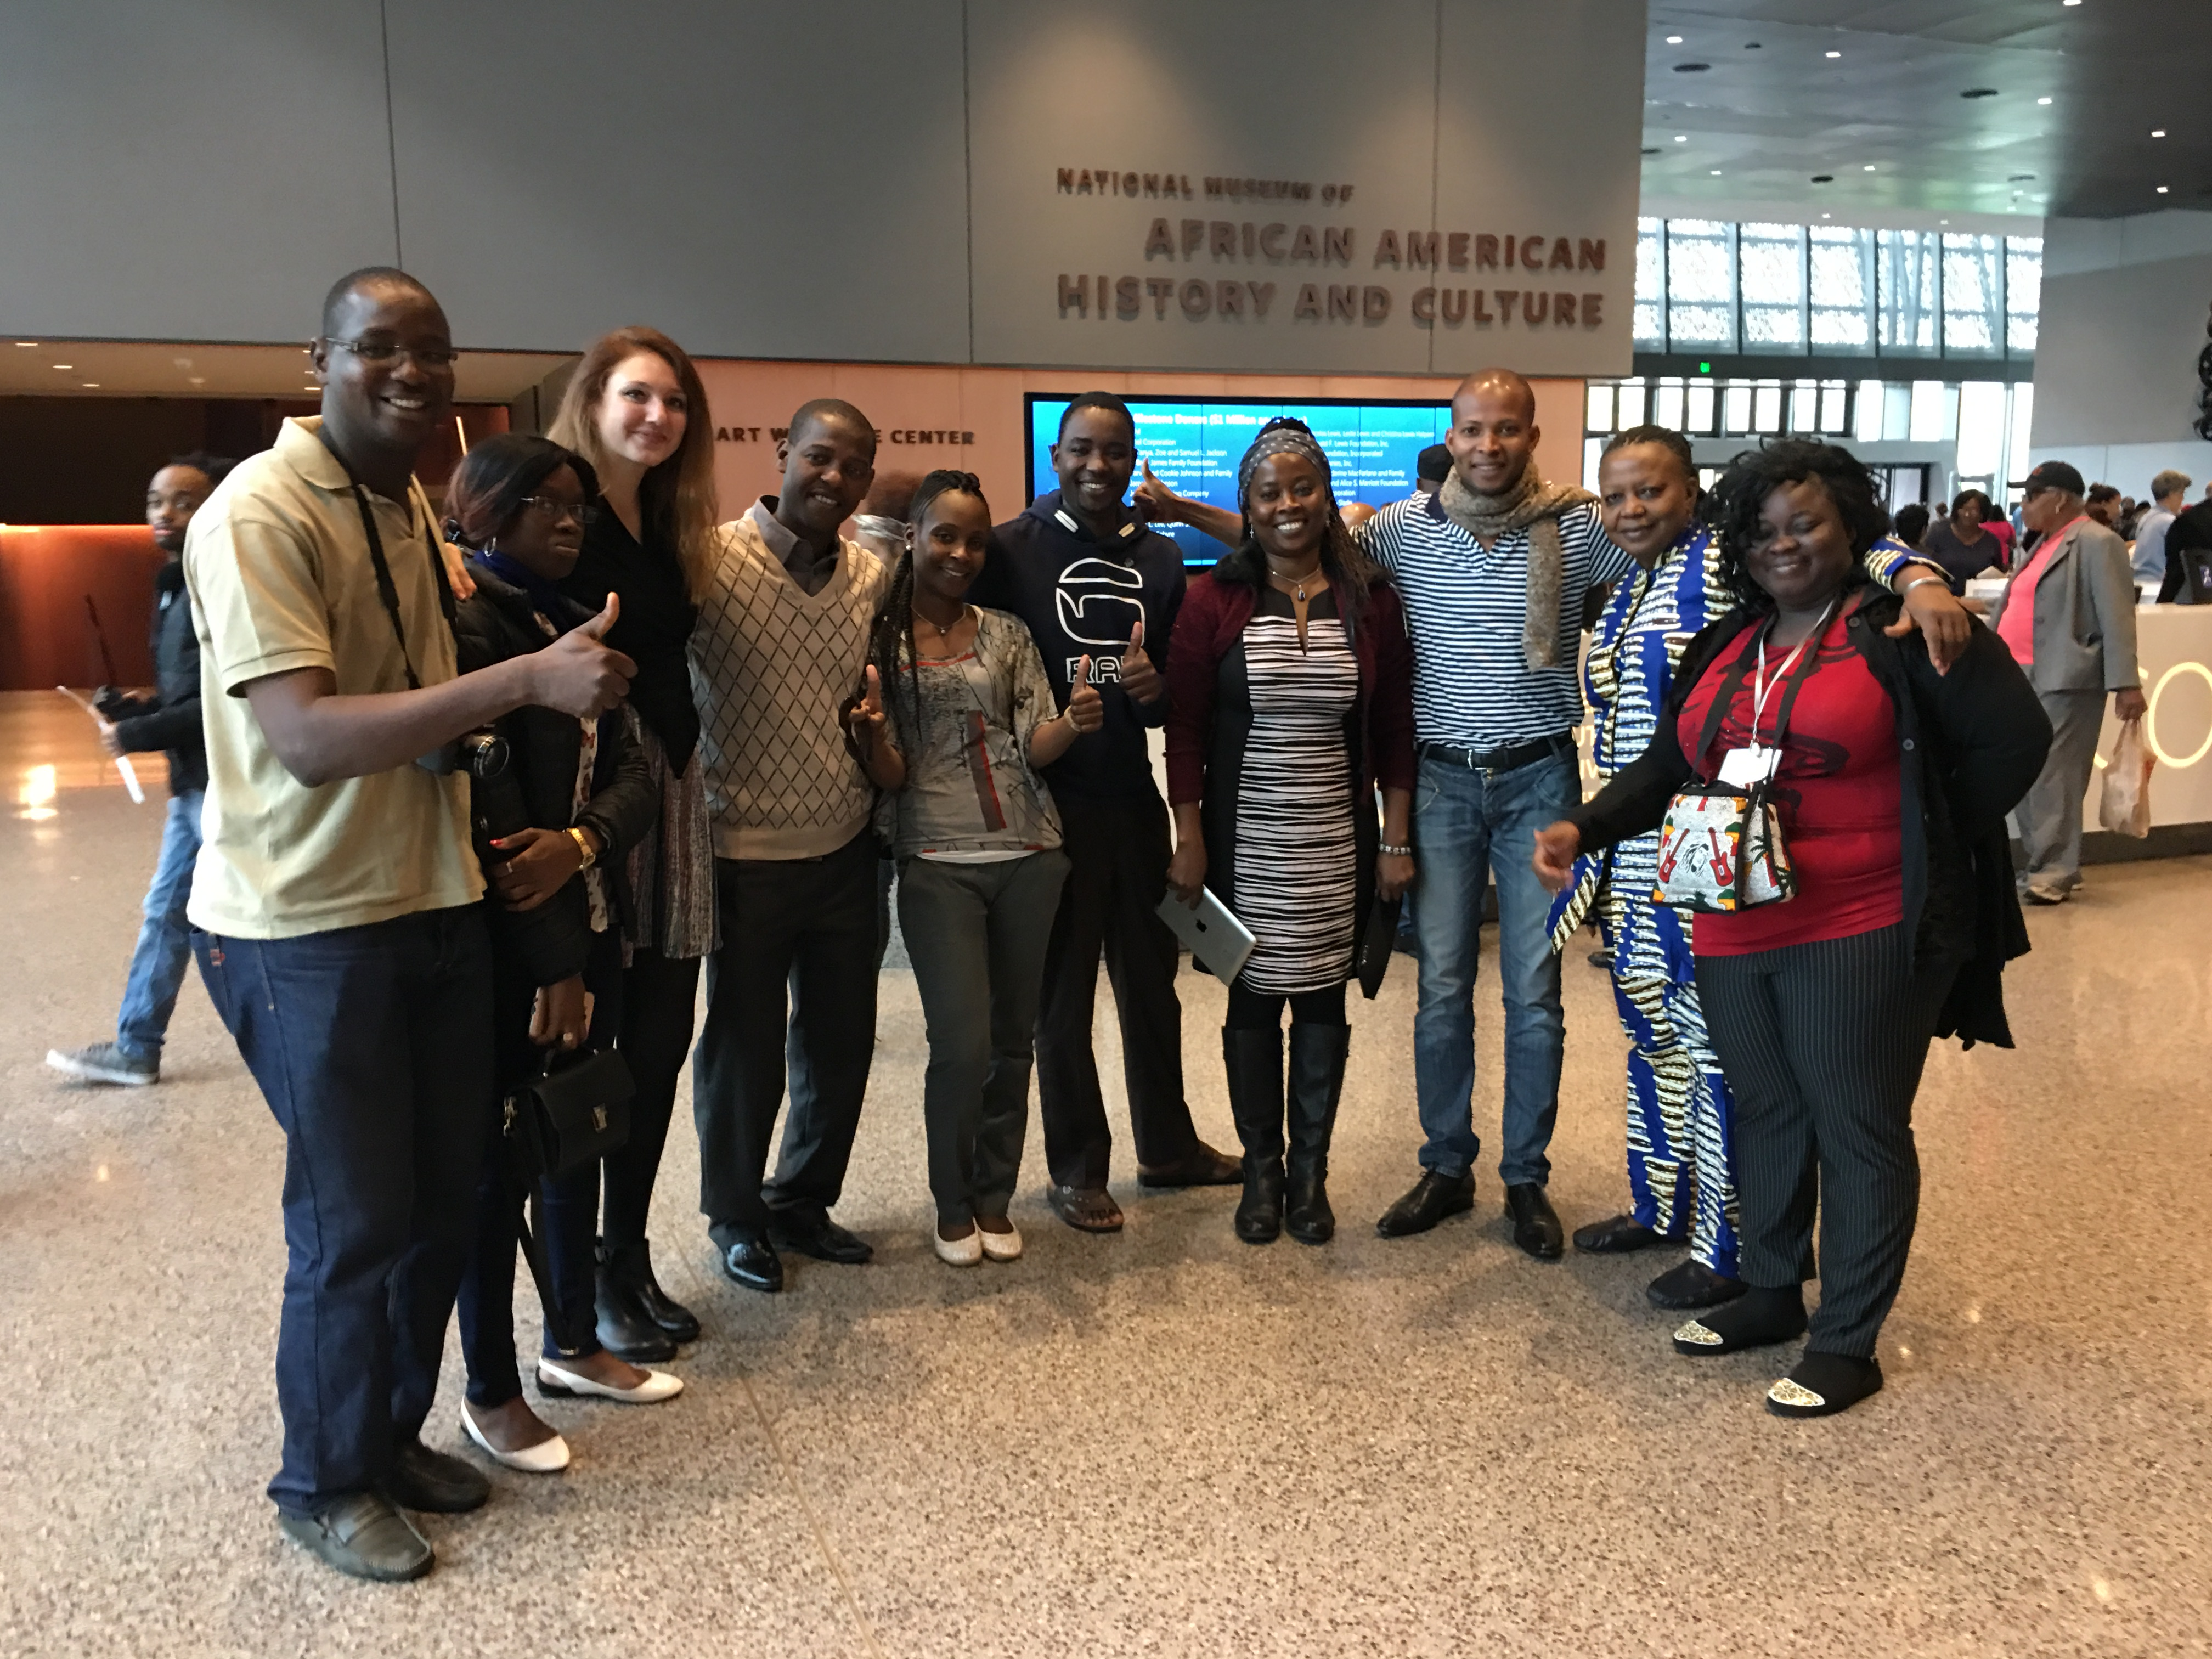 Participants take a group photo at the National Museum of African American History and Culture